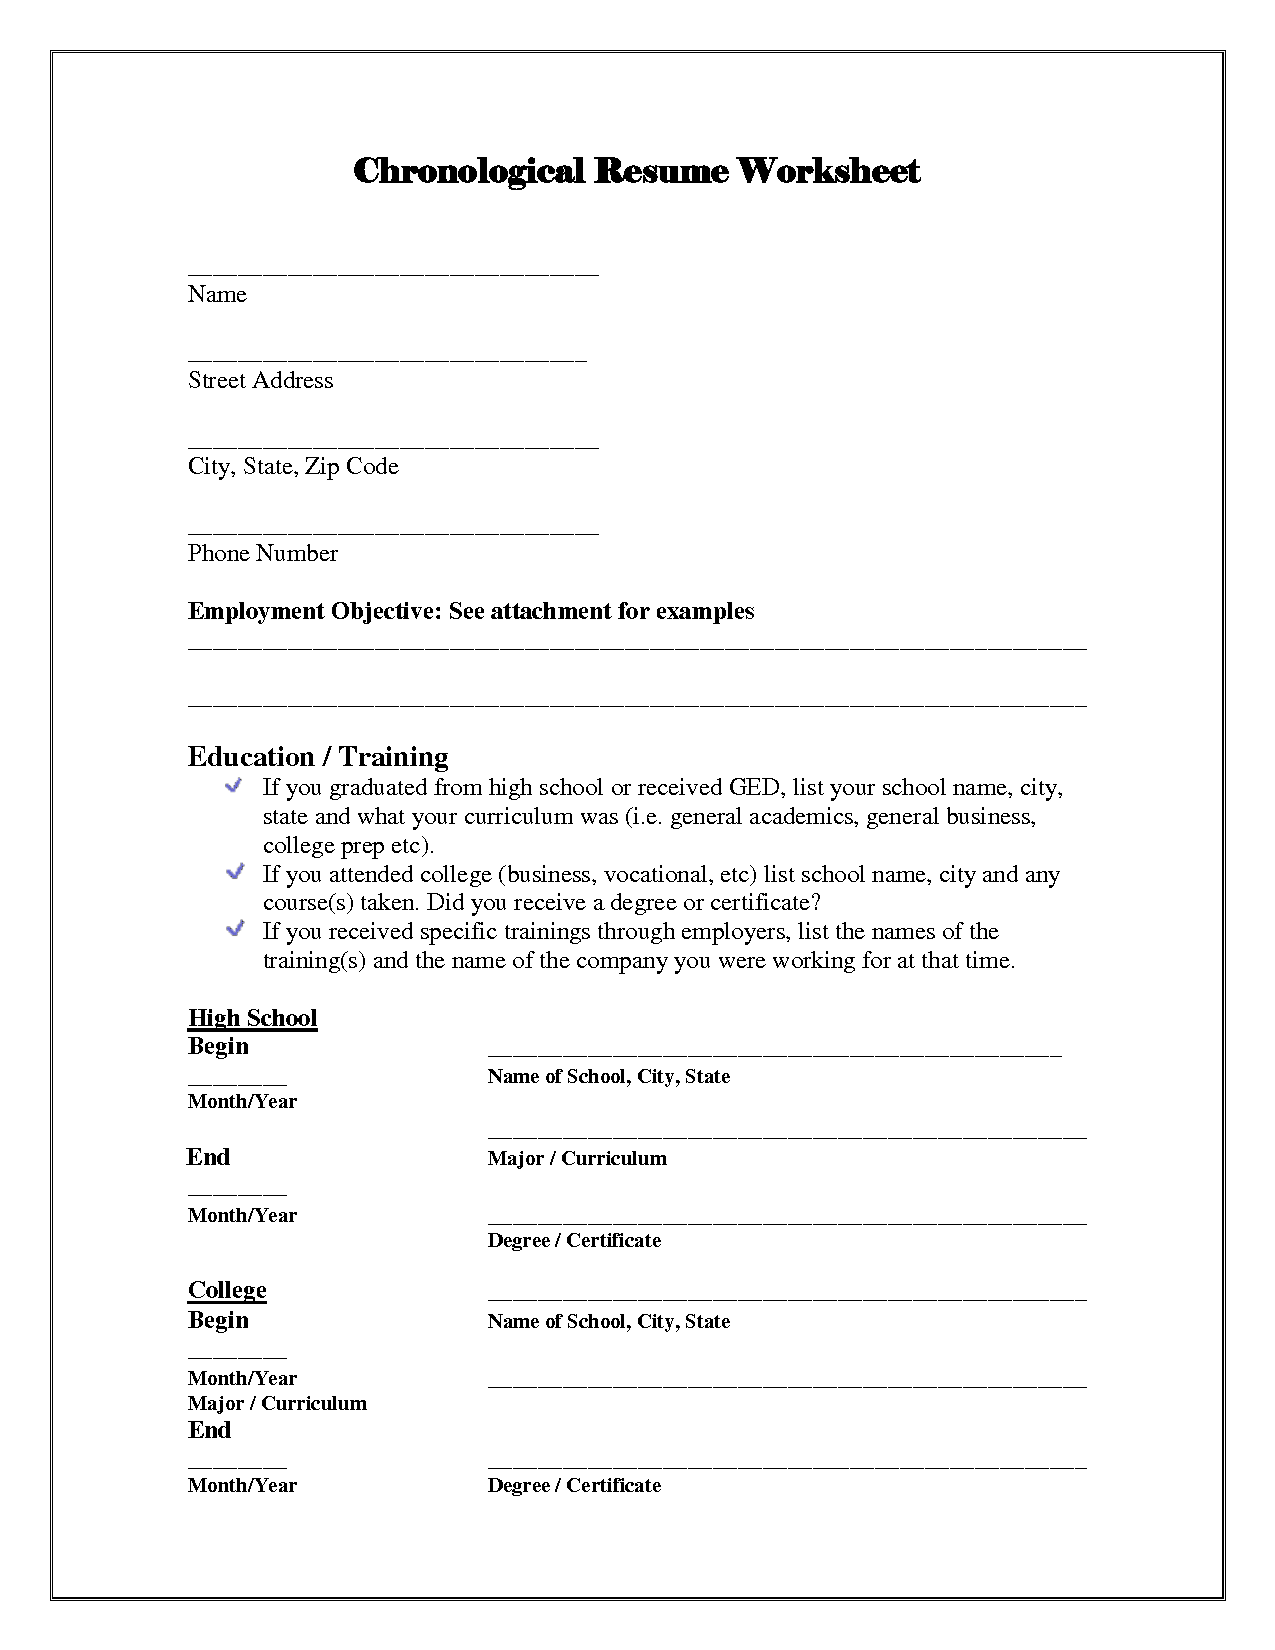 13 Best Images Of Simple Resume Worksheet